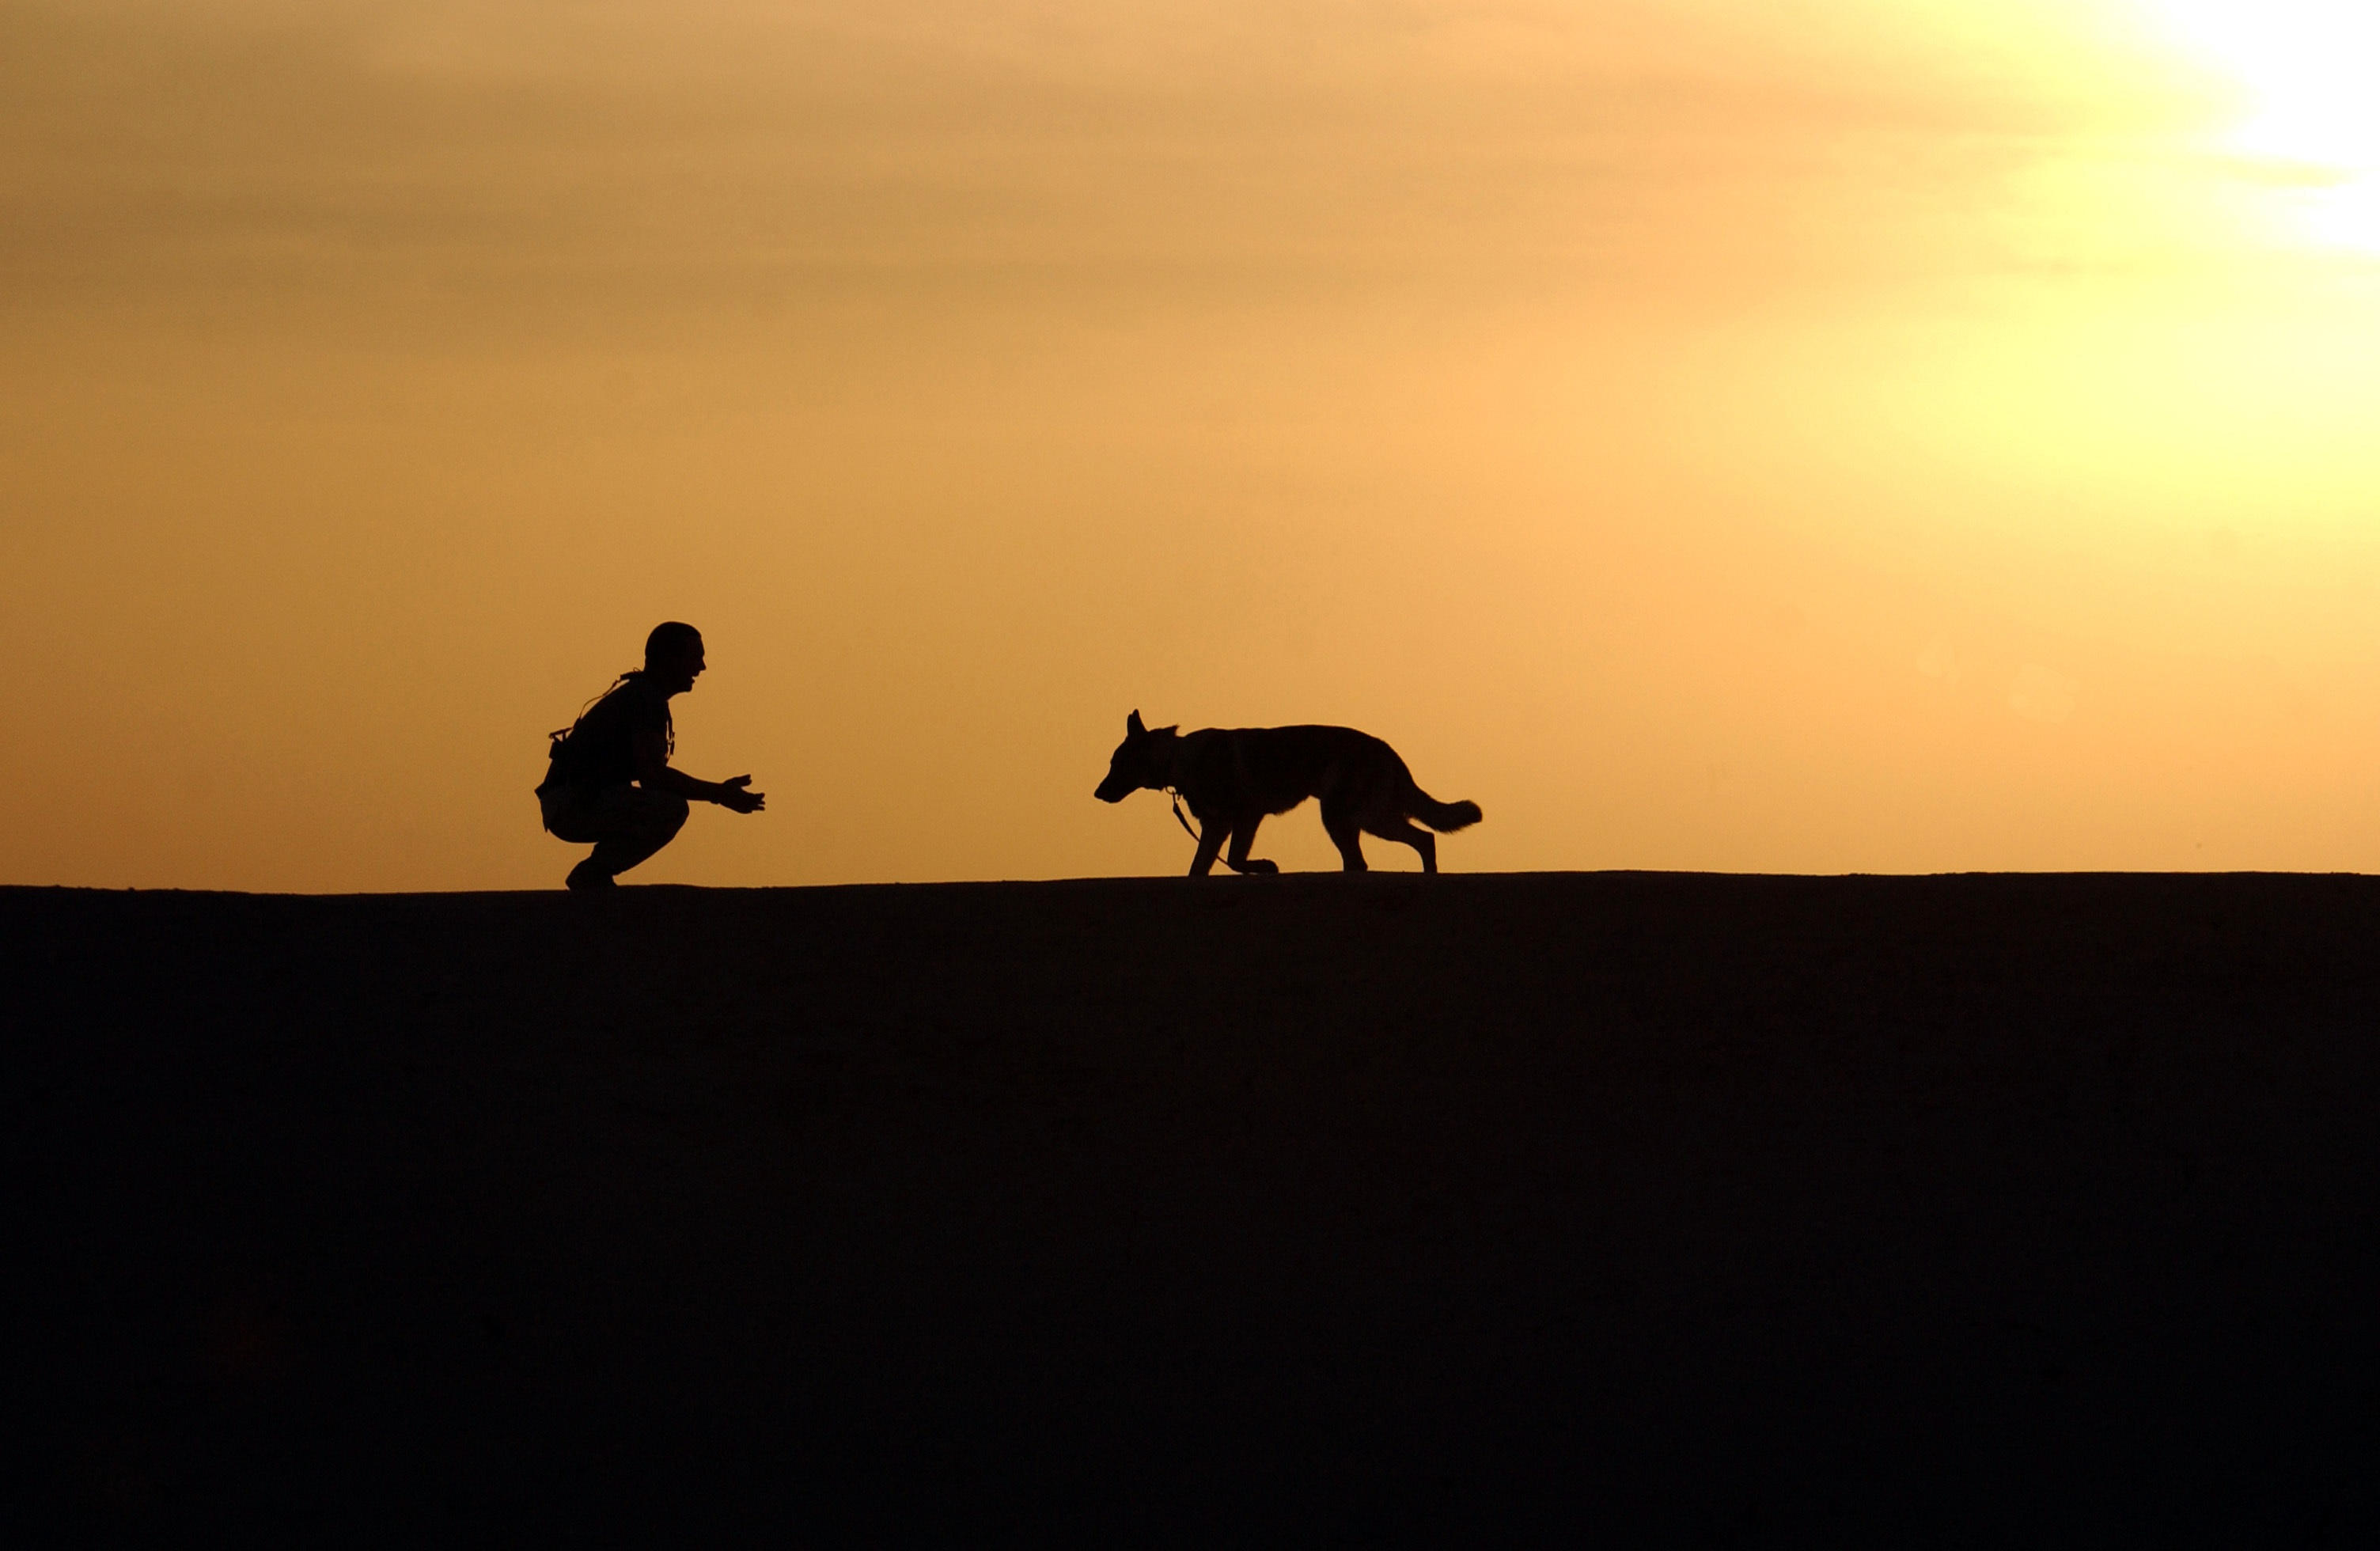 Samsung Galaxy Wallpaper Hd Silhouette Photo Of Man An Dog During Sunset 183 Free Stock